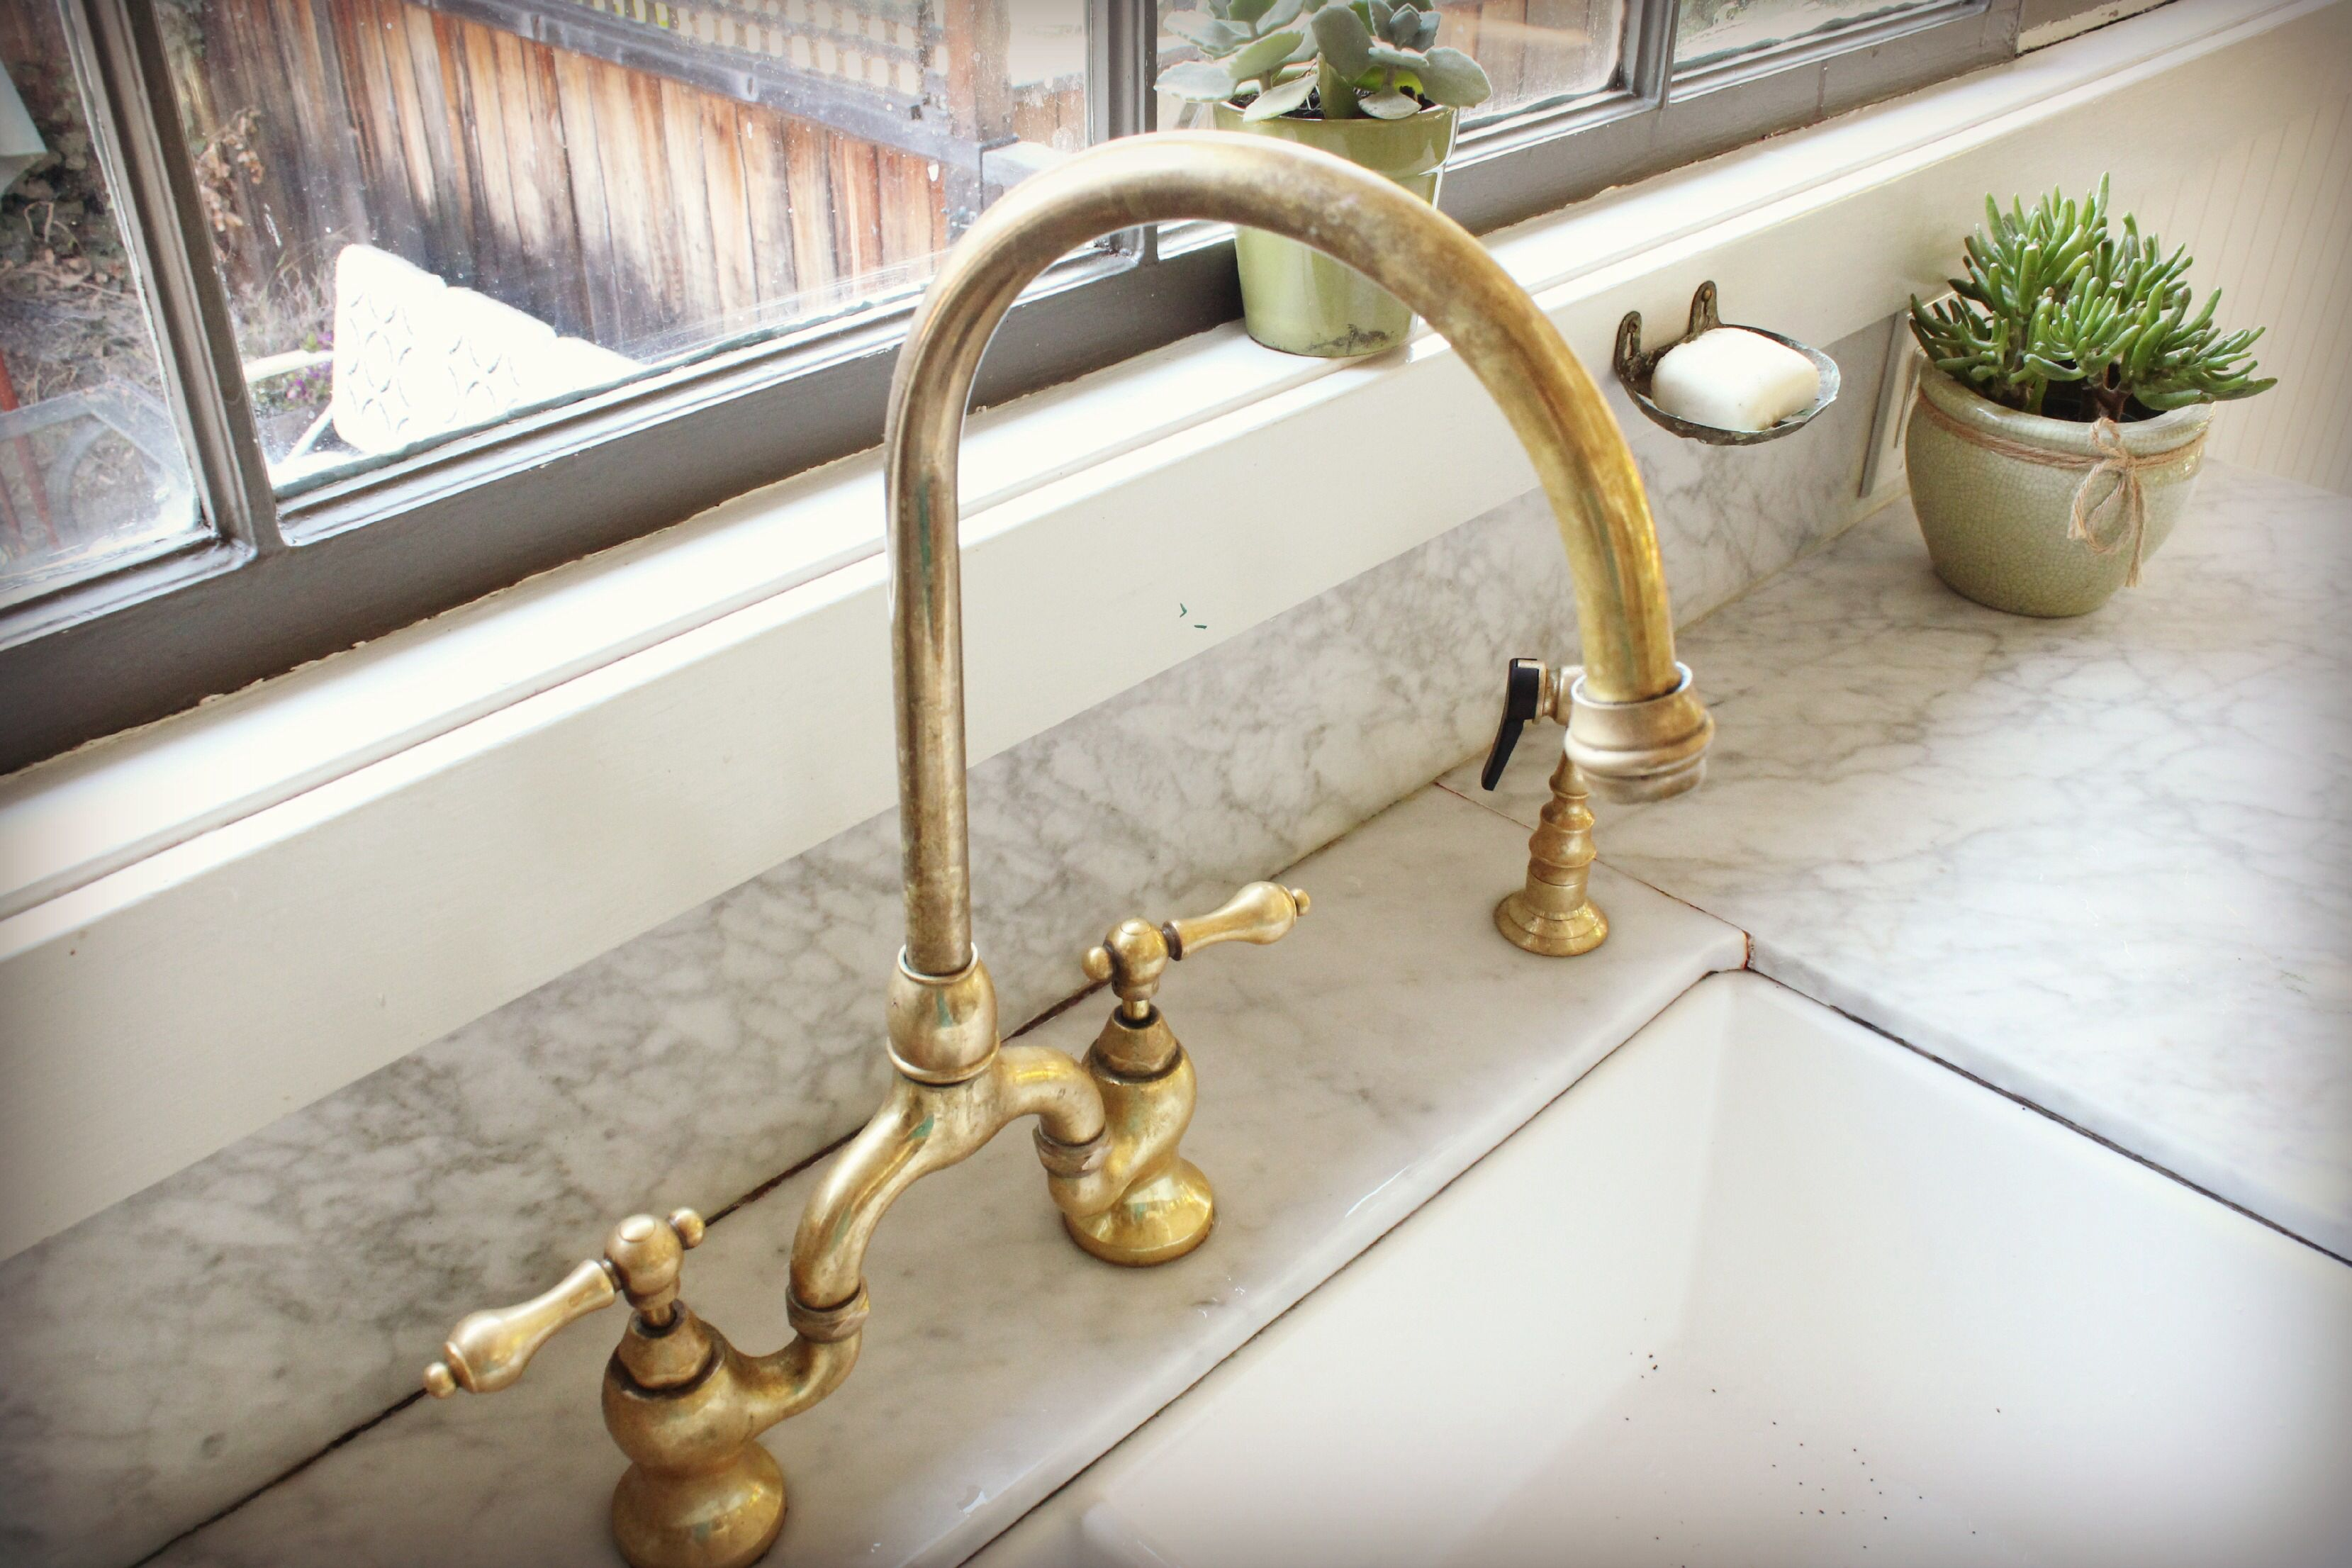 Pin By Nicole On Home Antique Brass Kitchen Faucet Brass